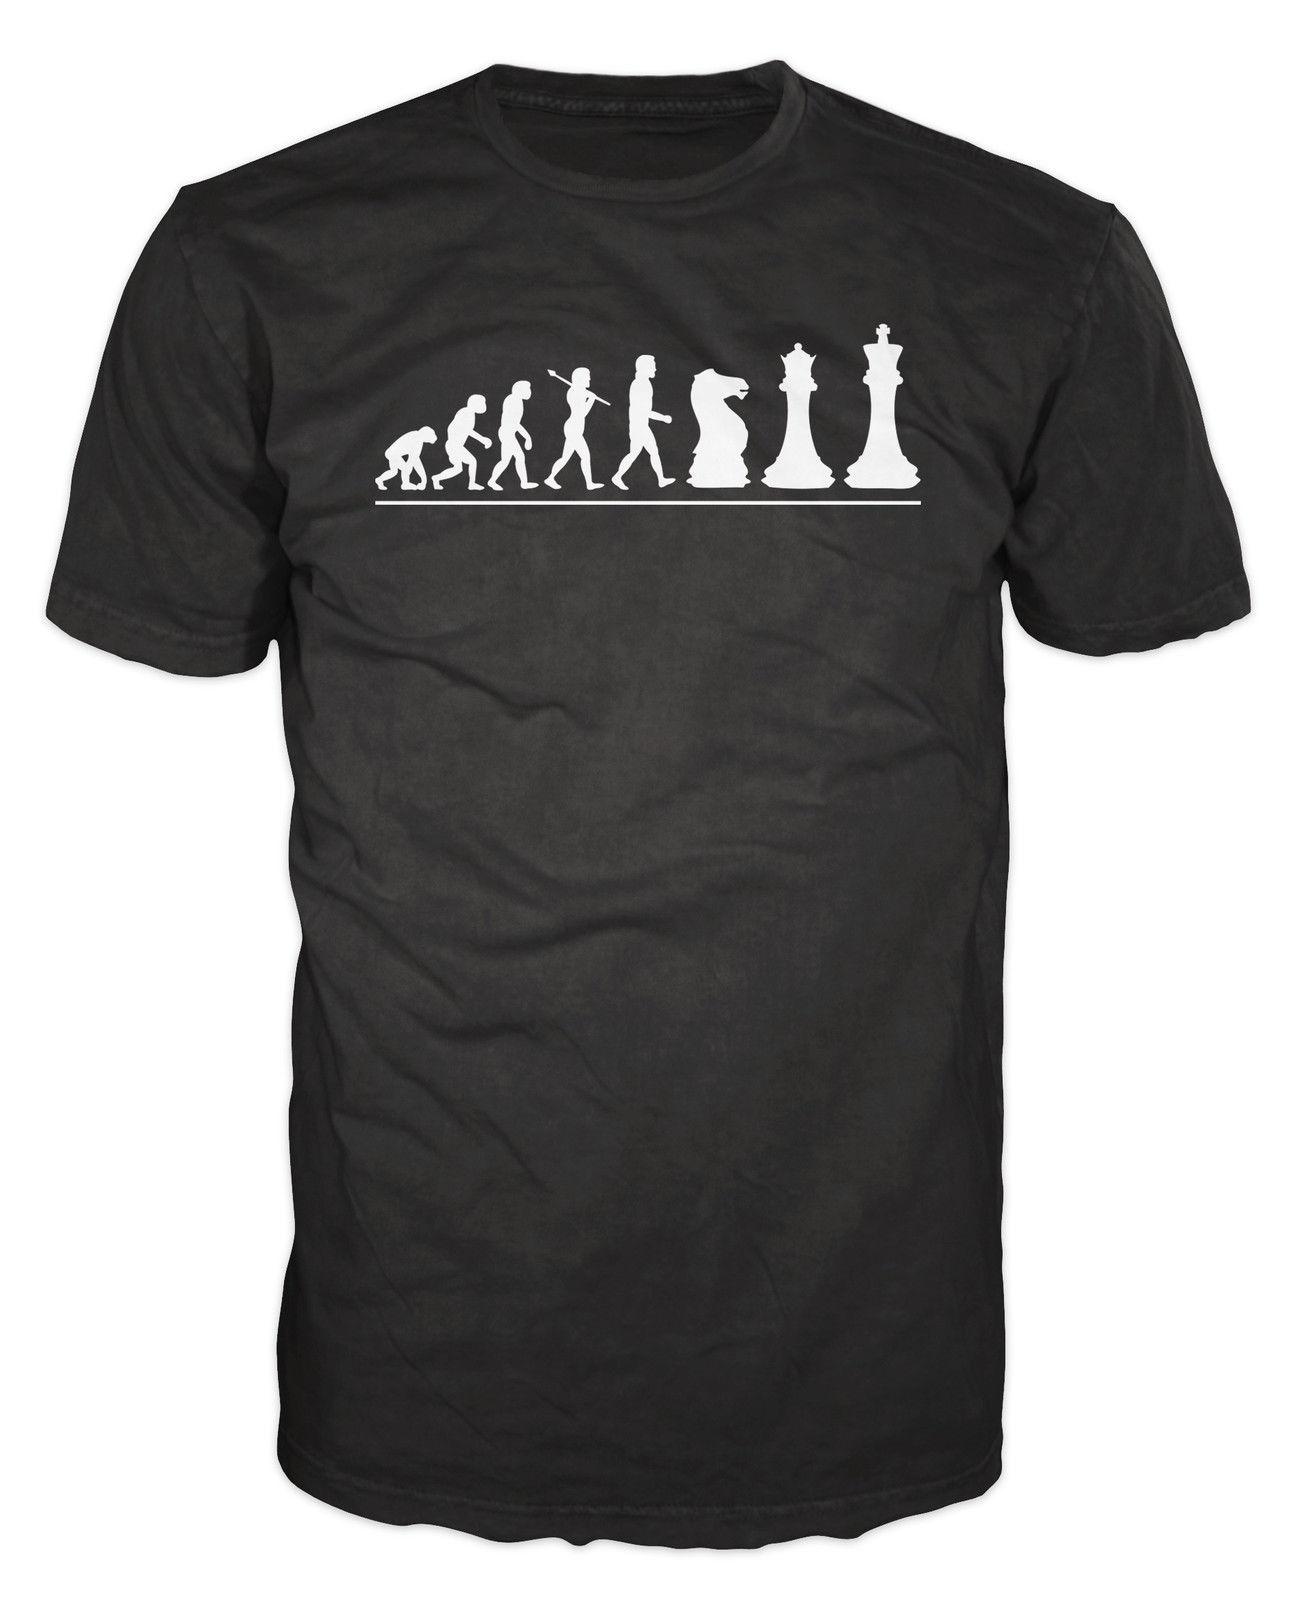 Chess Player Evolution Funny Mind Board Game T-shirt image